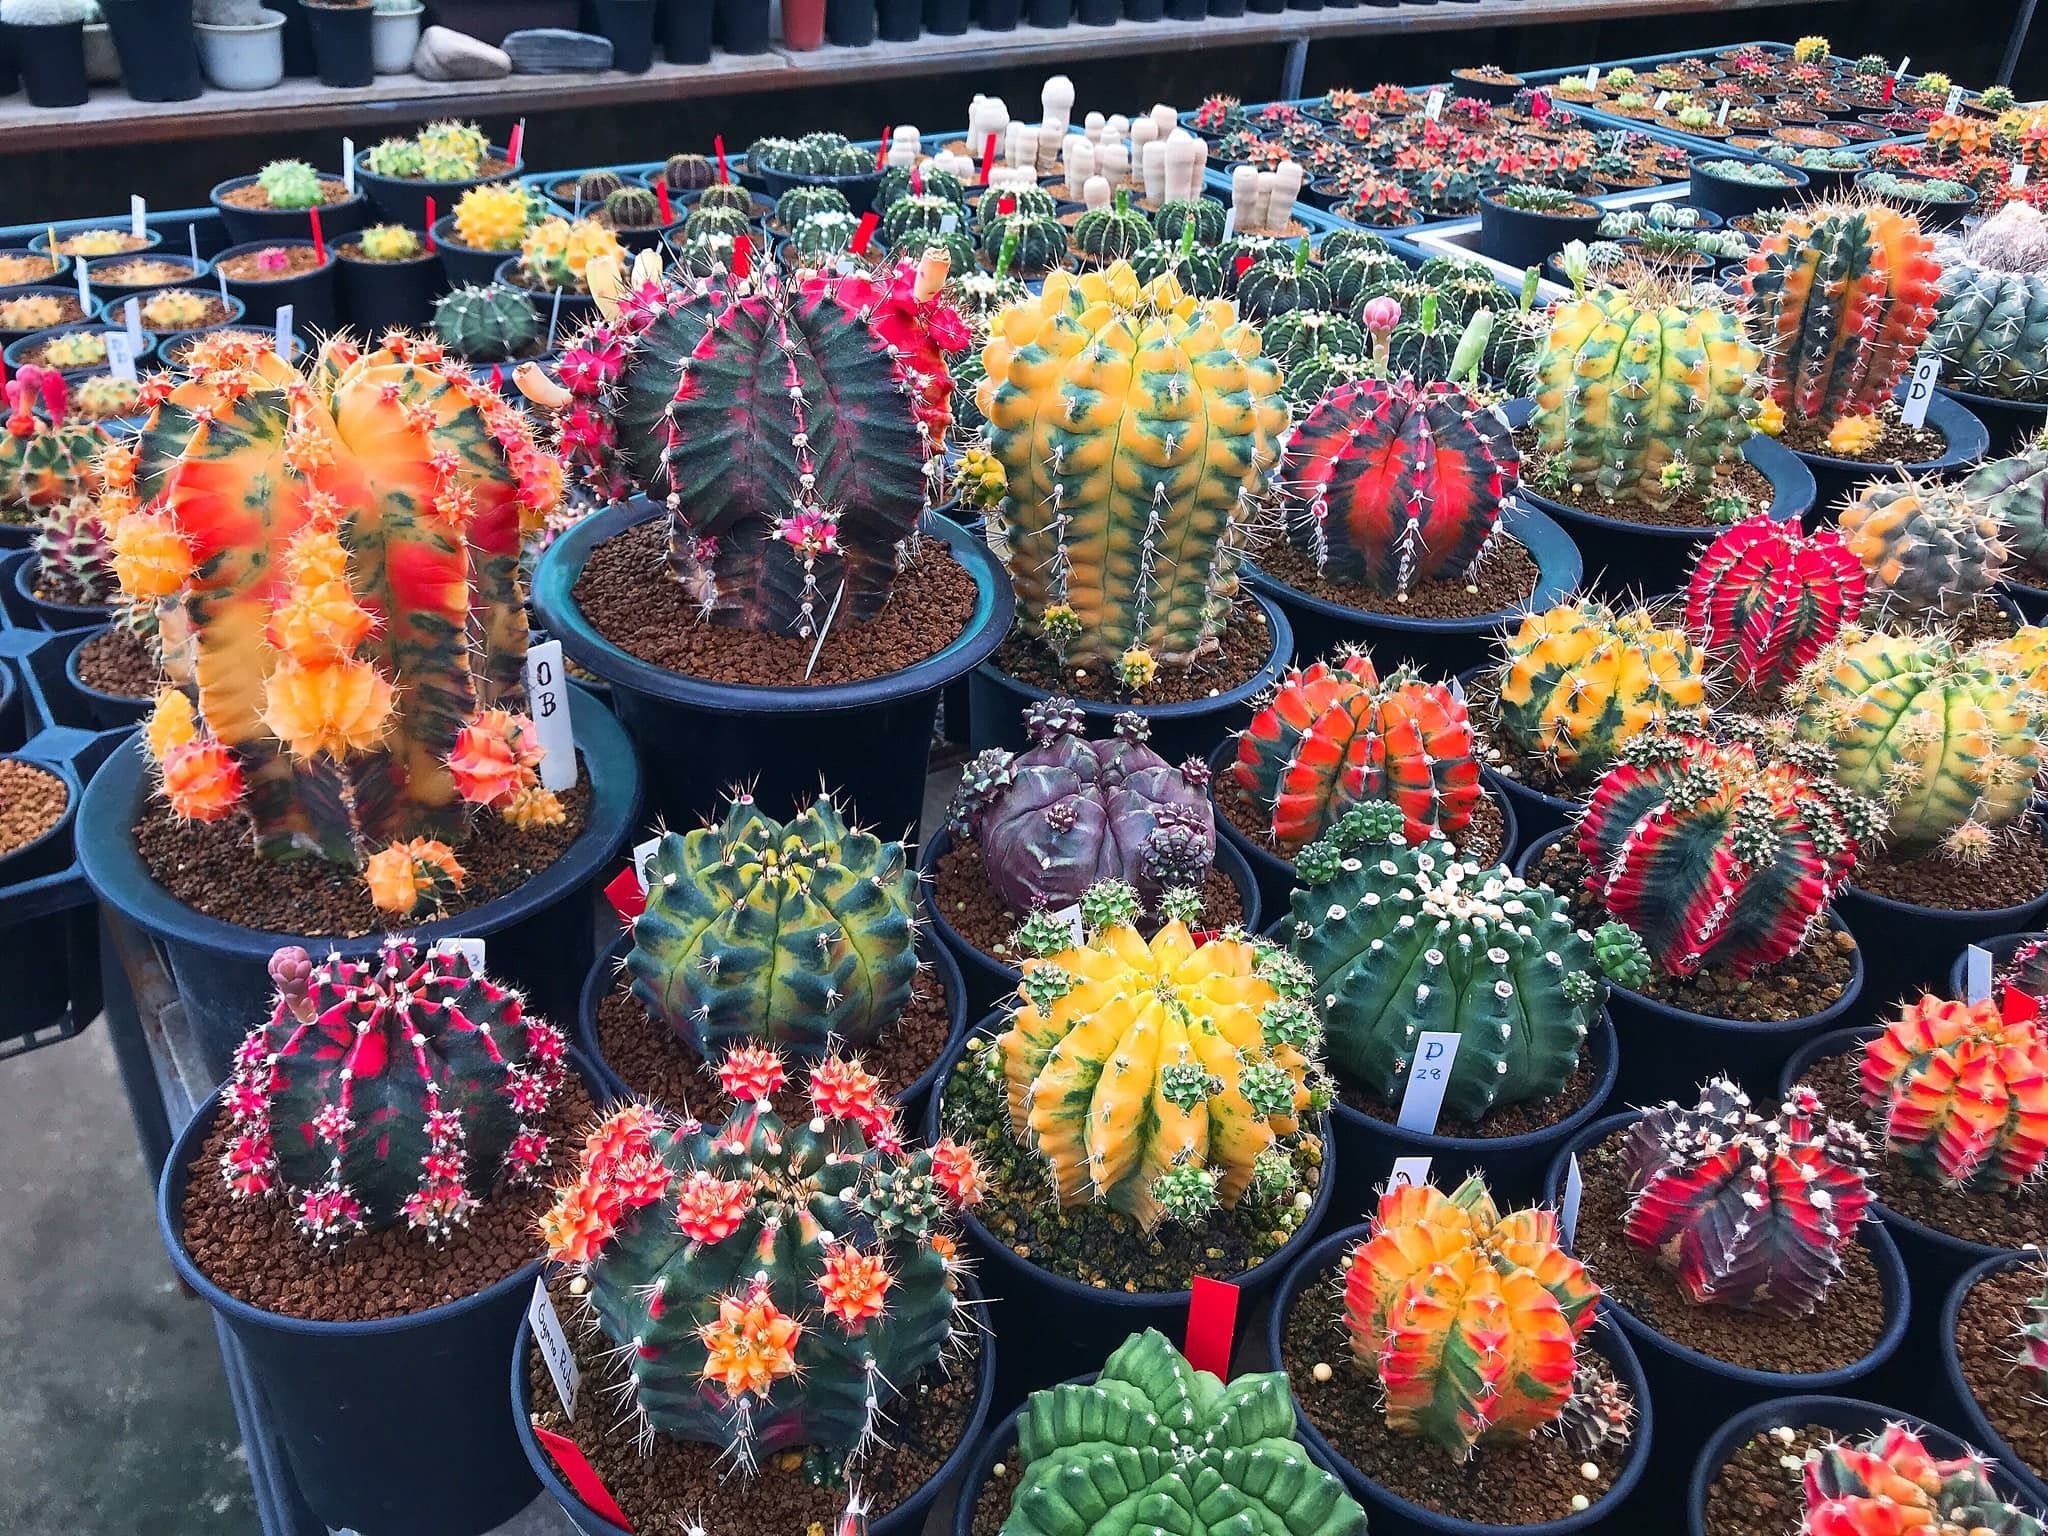 Pin by Cactus_sweethouse on Cactus succulent Cactus